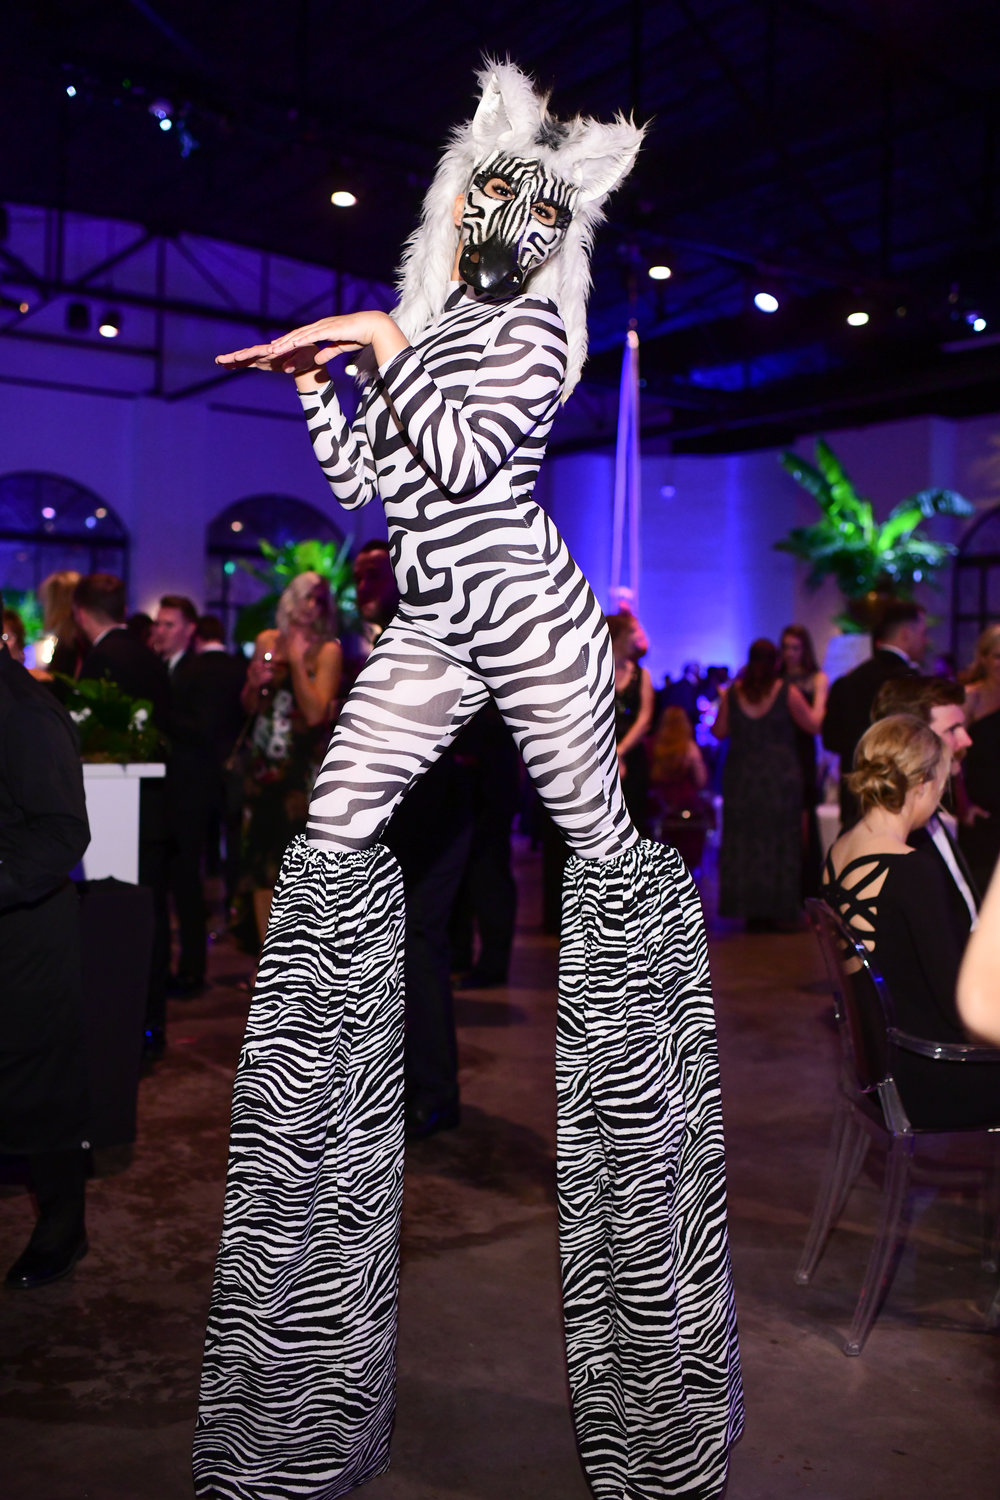 Zebra on stilts; Photo by Daniel Ortiz.jpg